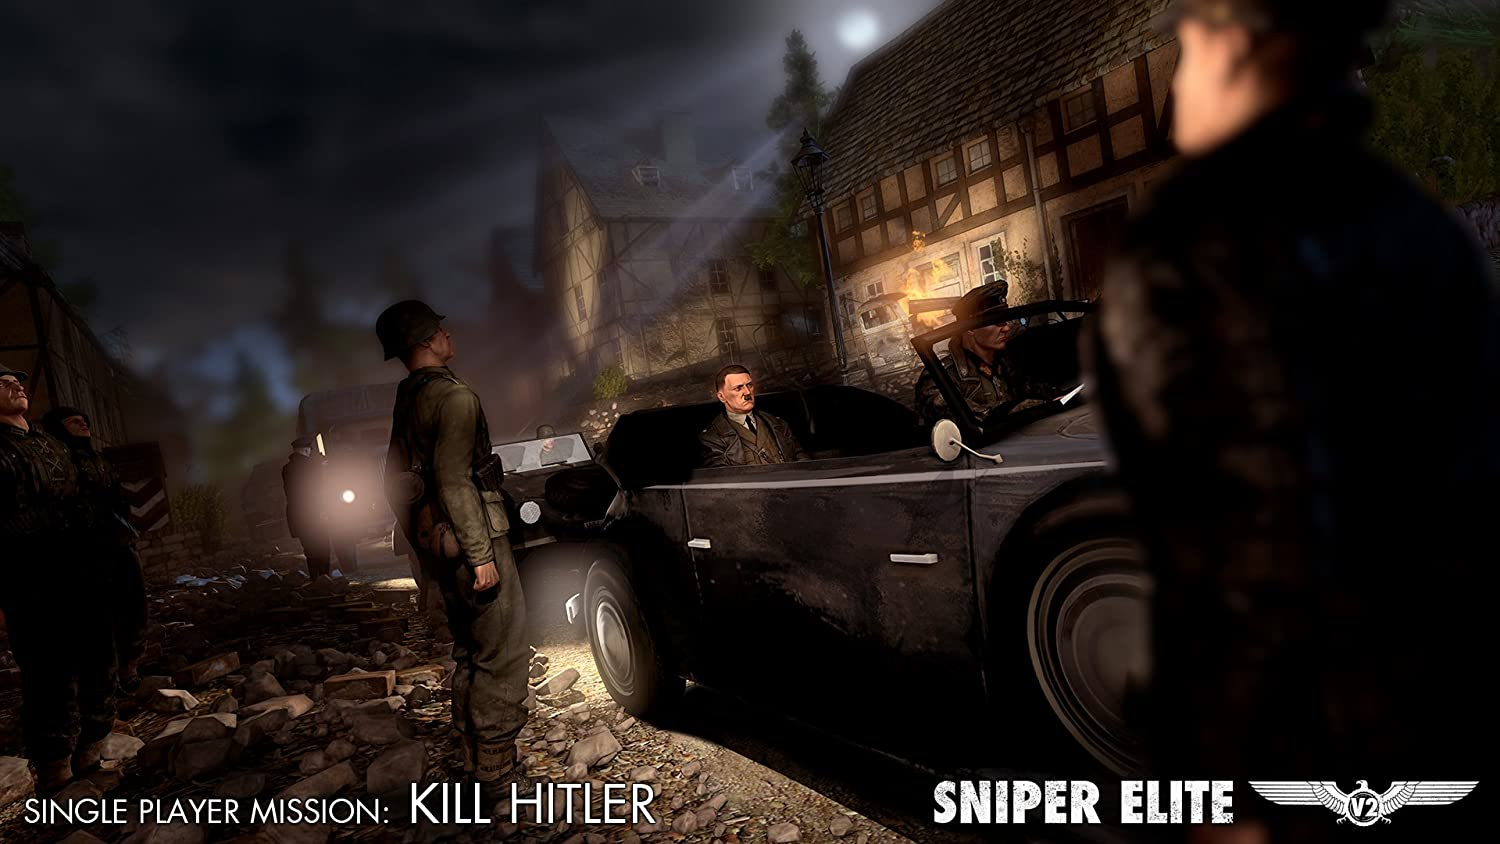 Sniper Elite V2 - Kill Hitler DLC Pack [PC Steam Code]